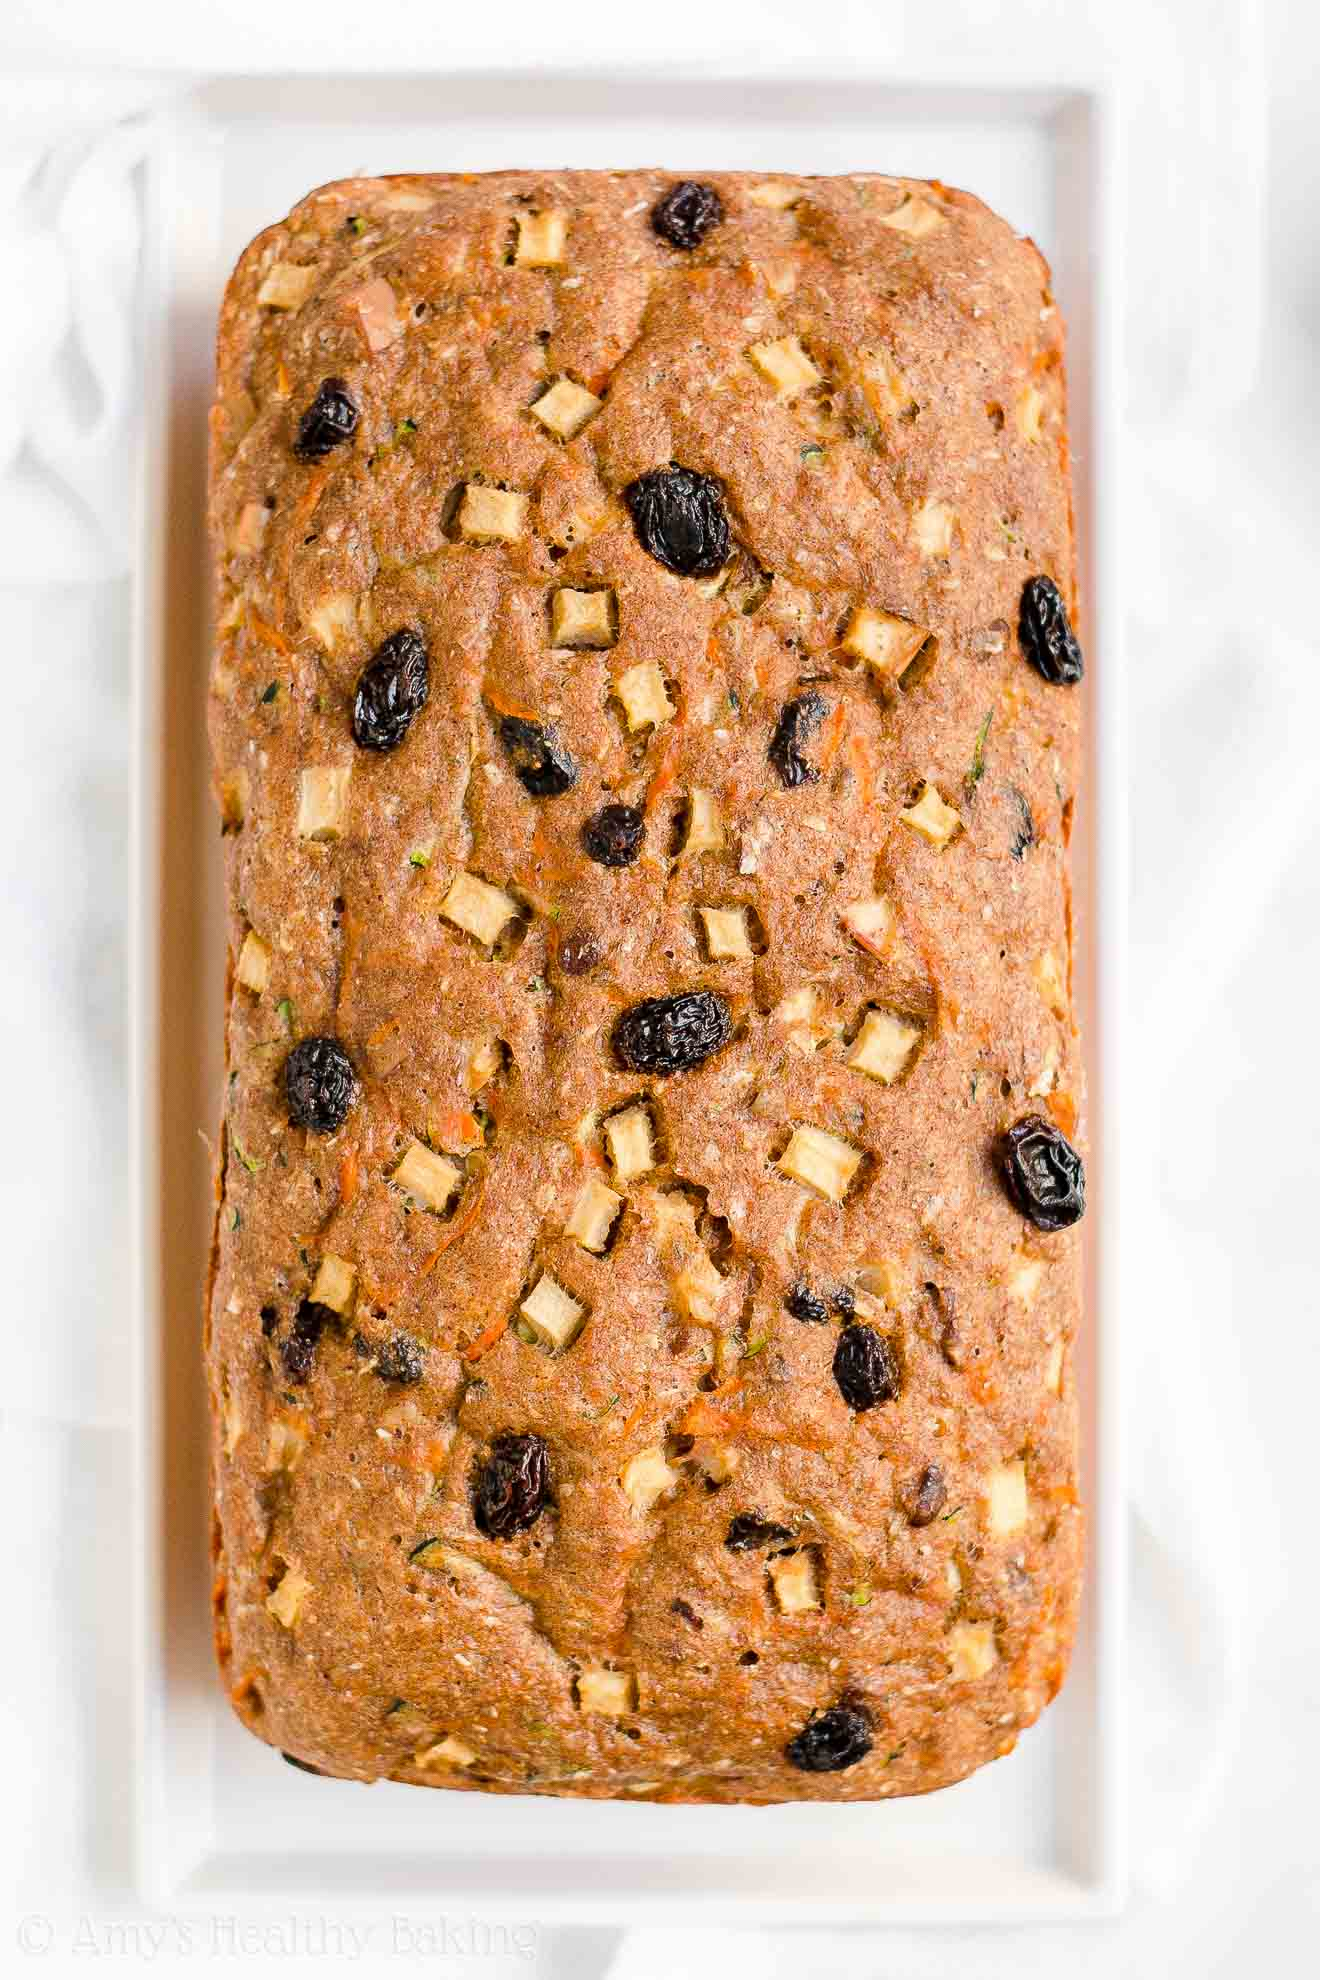 Healthy Low Calorie Morning Glory Zucchini Bread